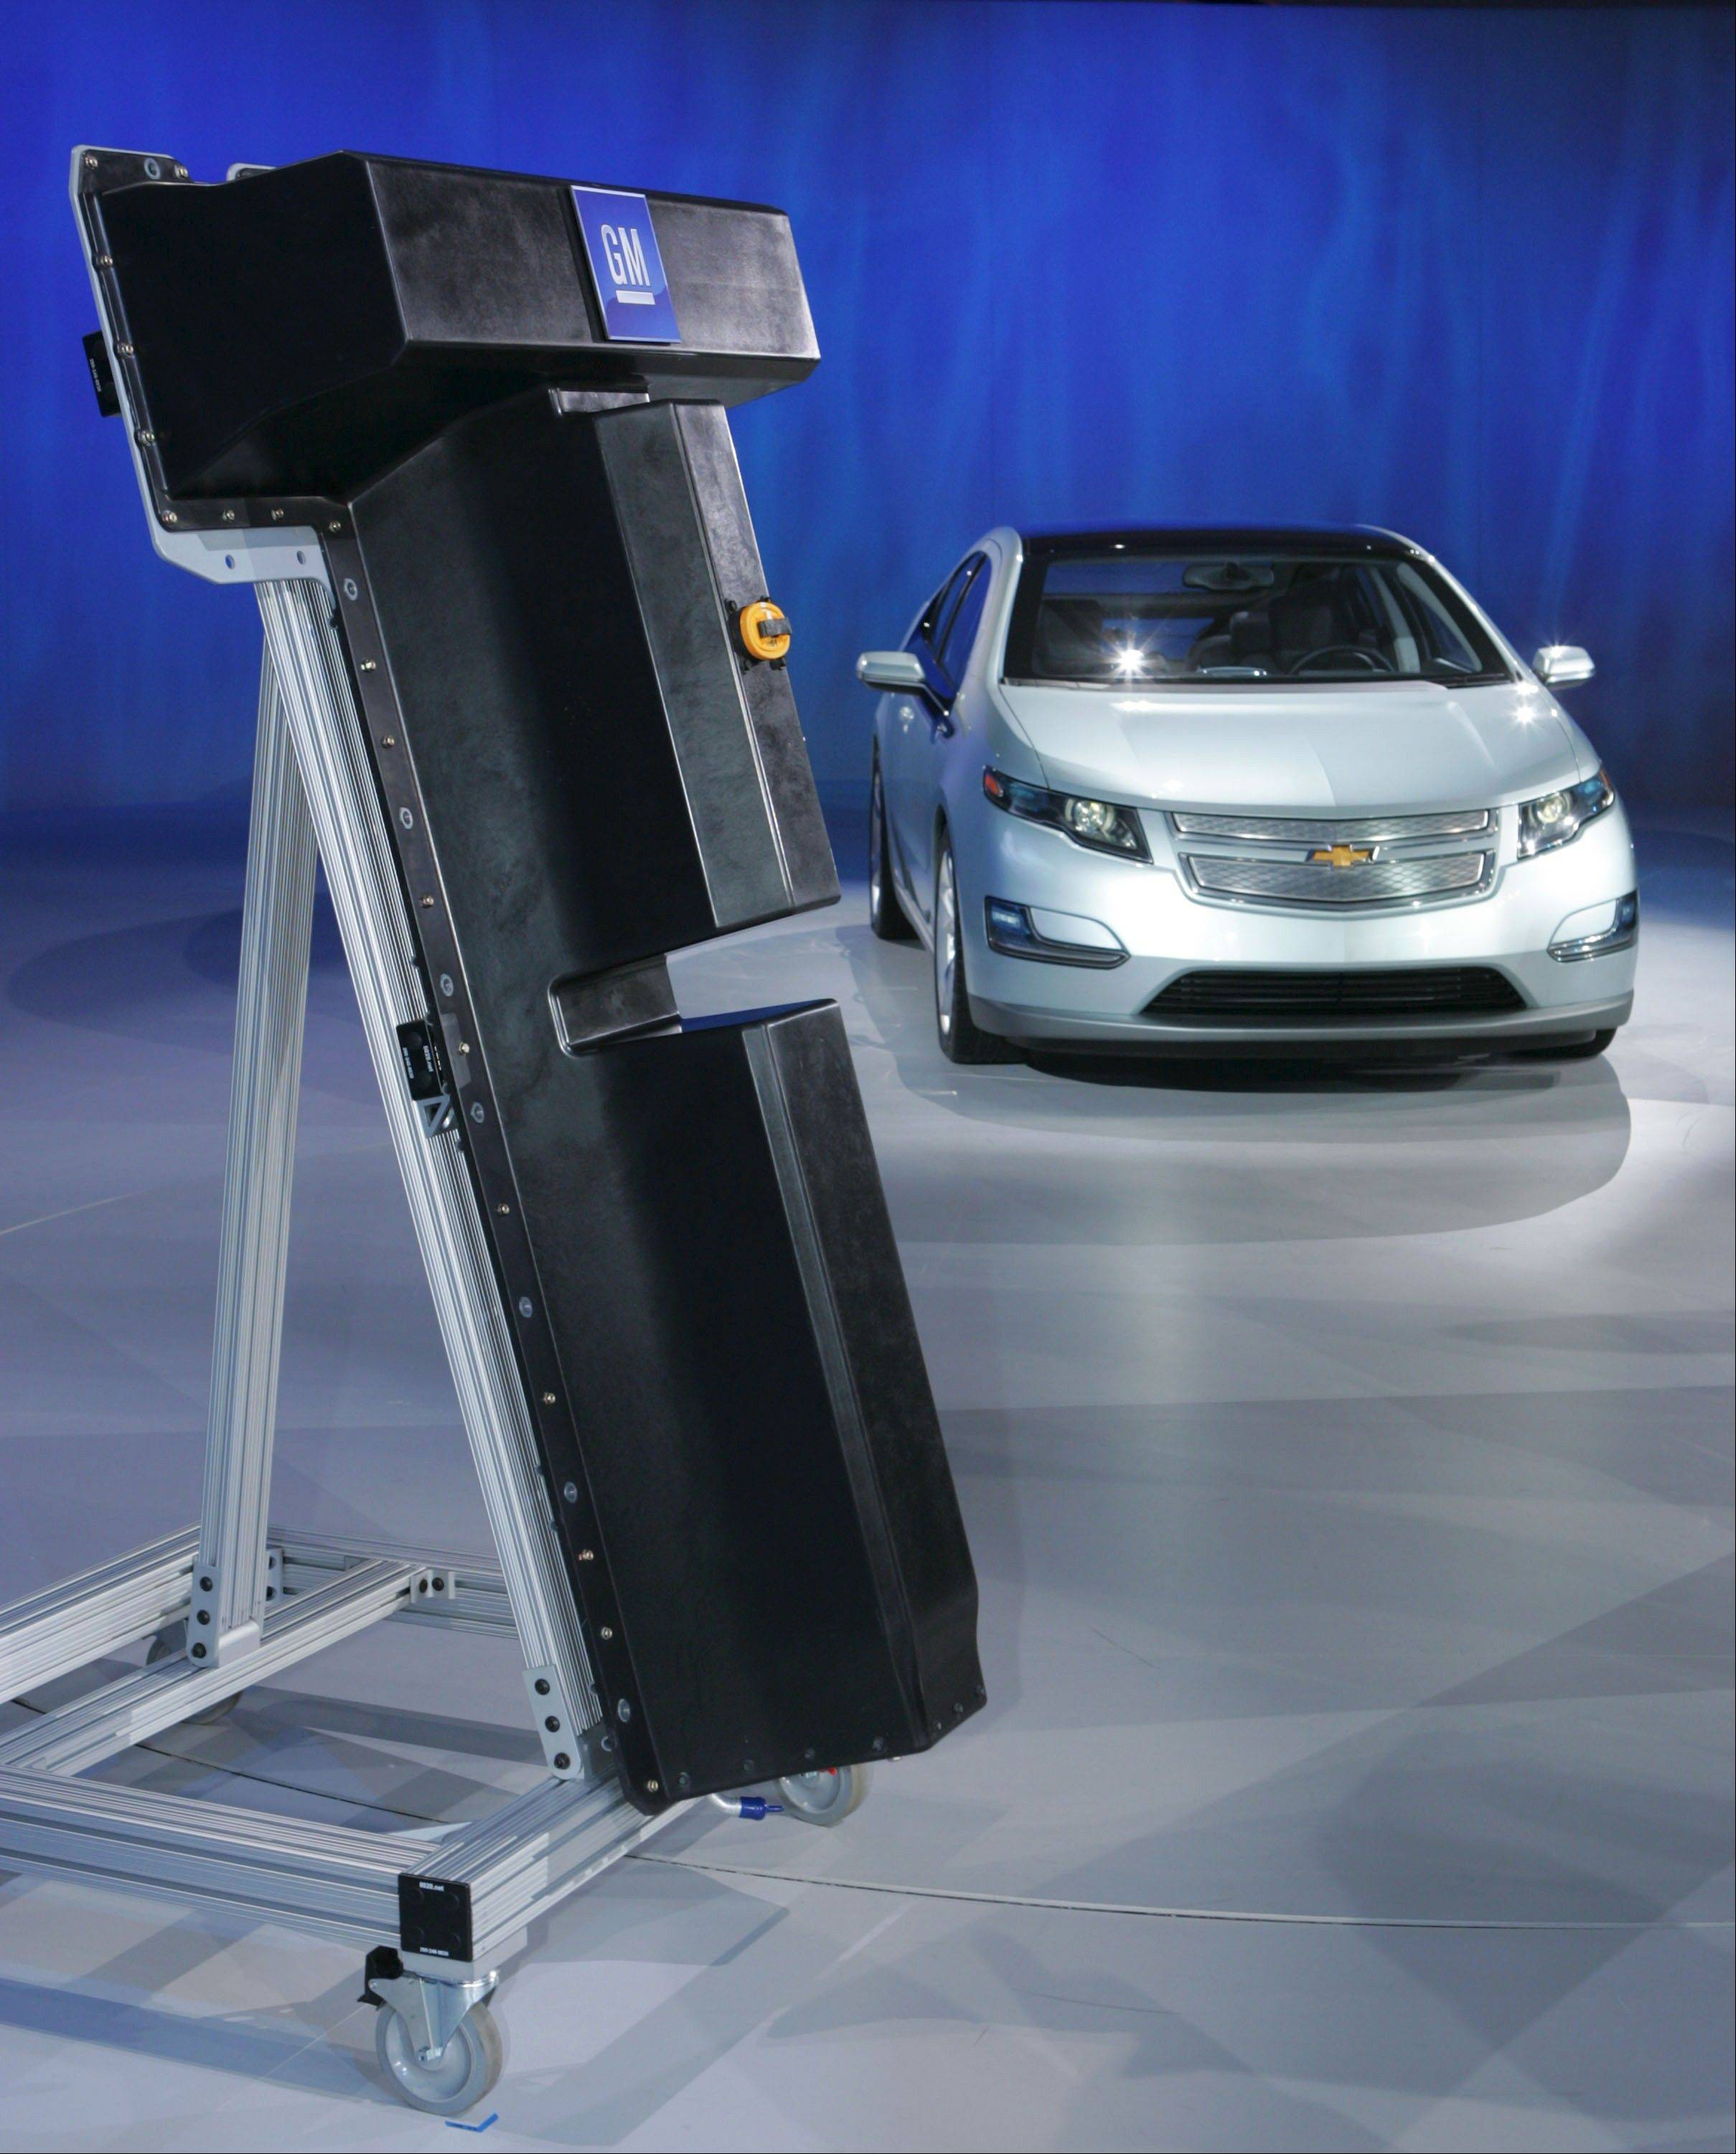 The heft of the Chevrolet Volt battery is apparent from this replica on display next to a Volt at a 2009 General Motors event.